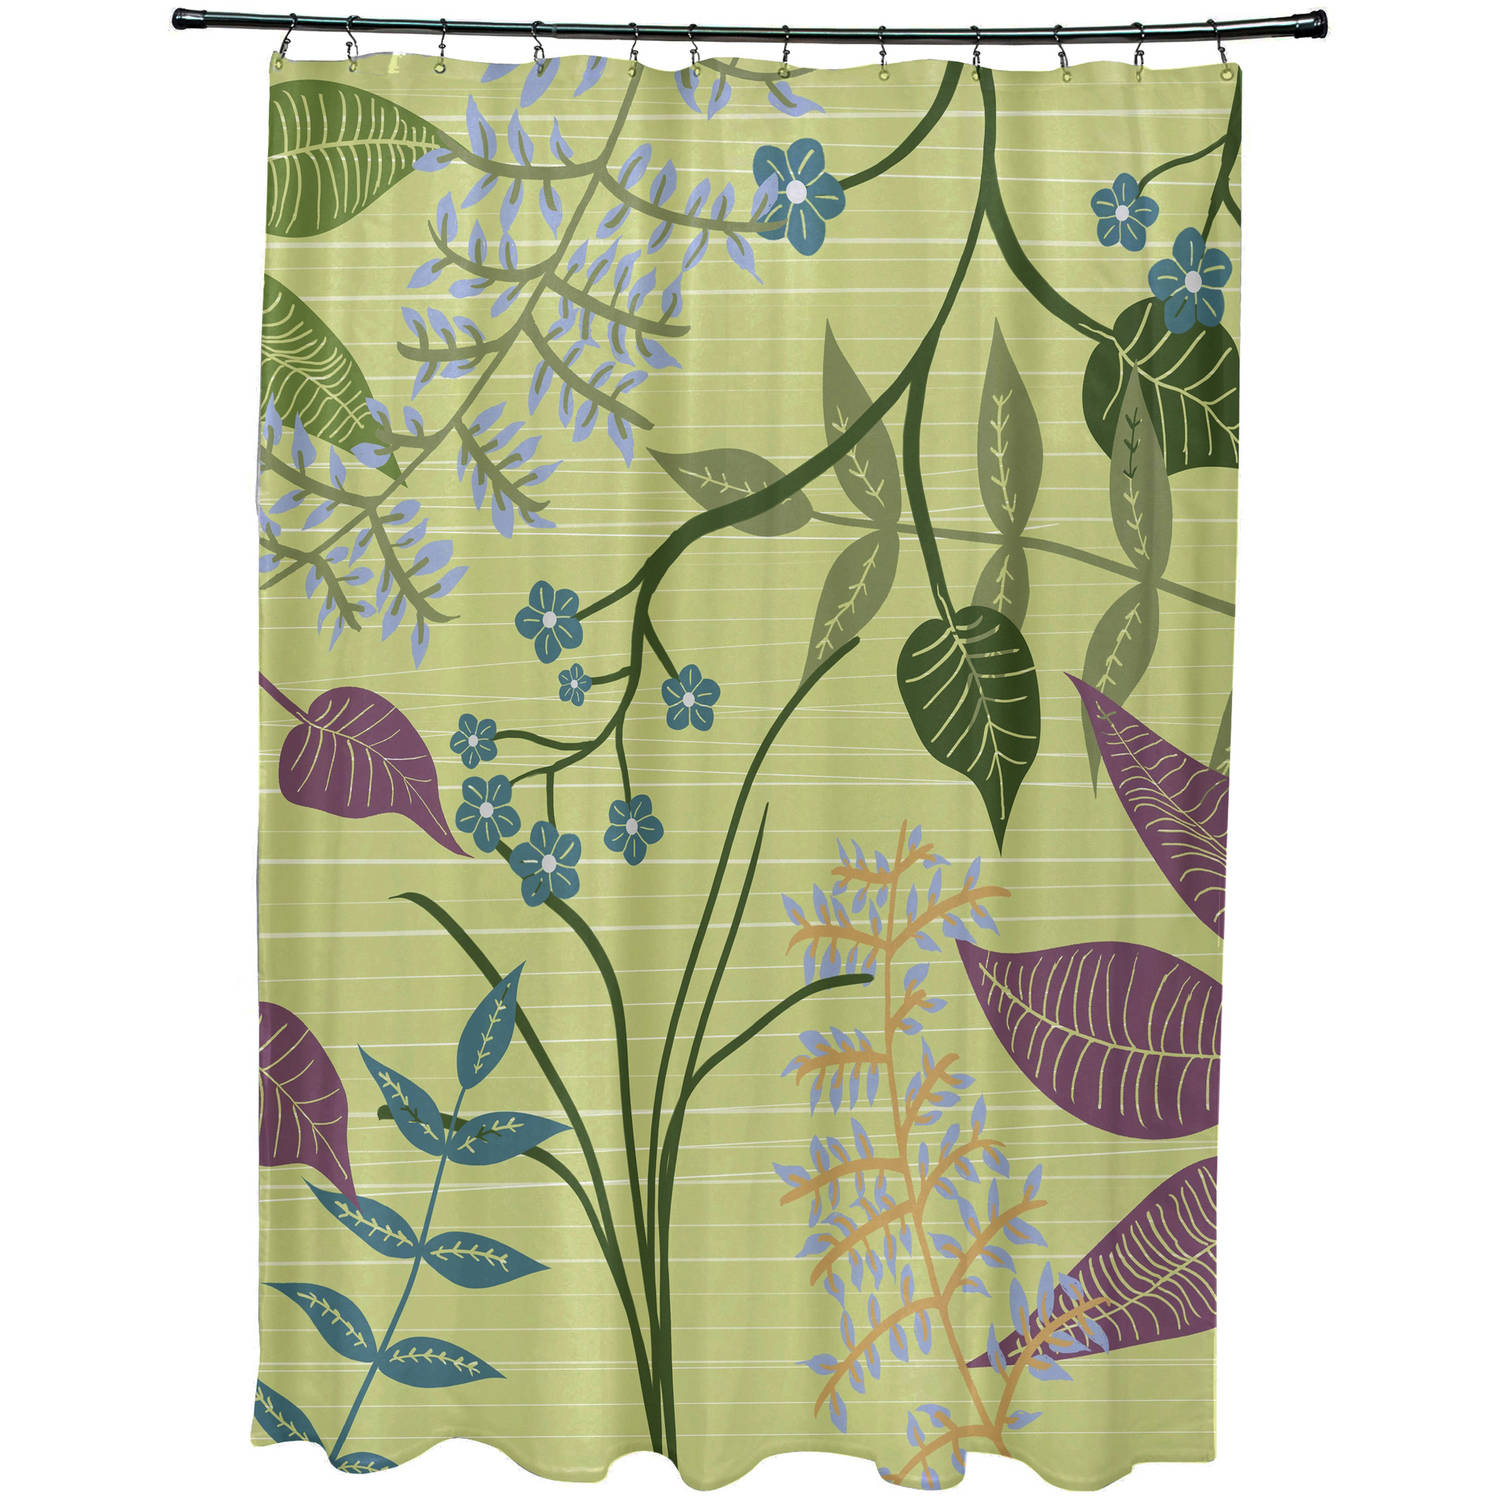 "Simply Daisy 71"" x 74"" Botanical Floral Print Shower Curtain"